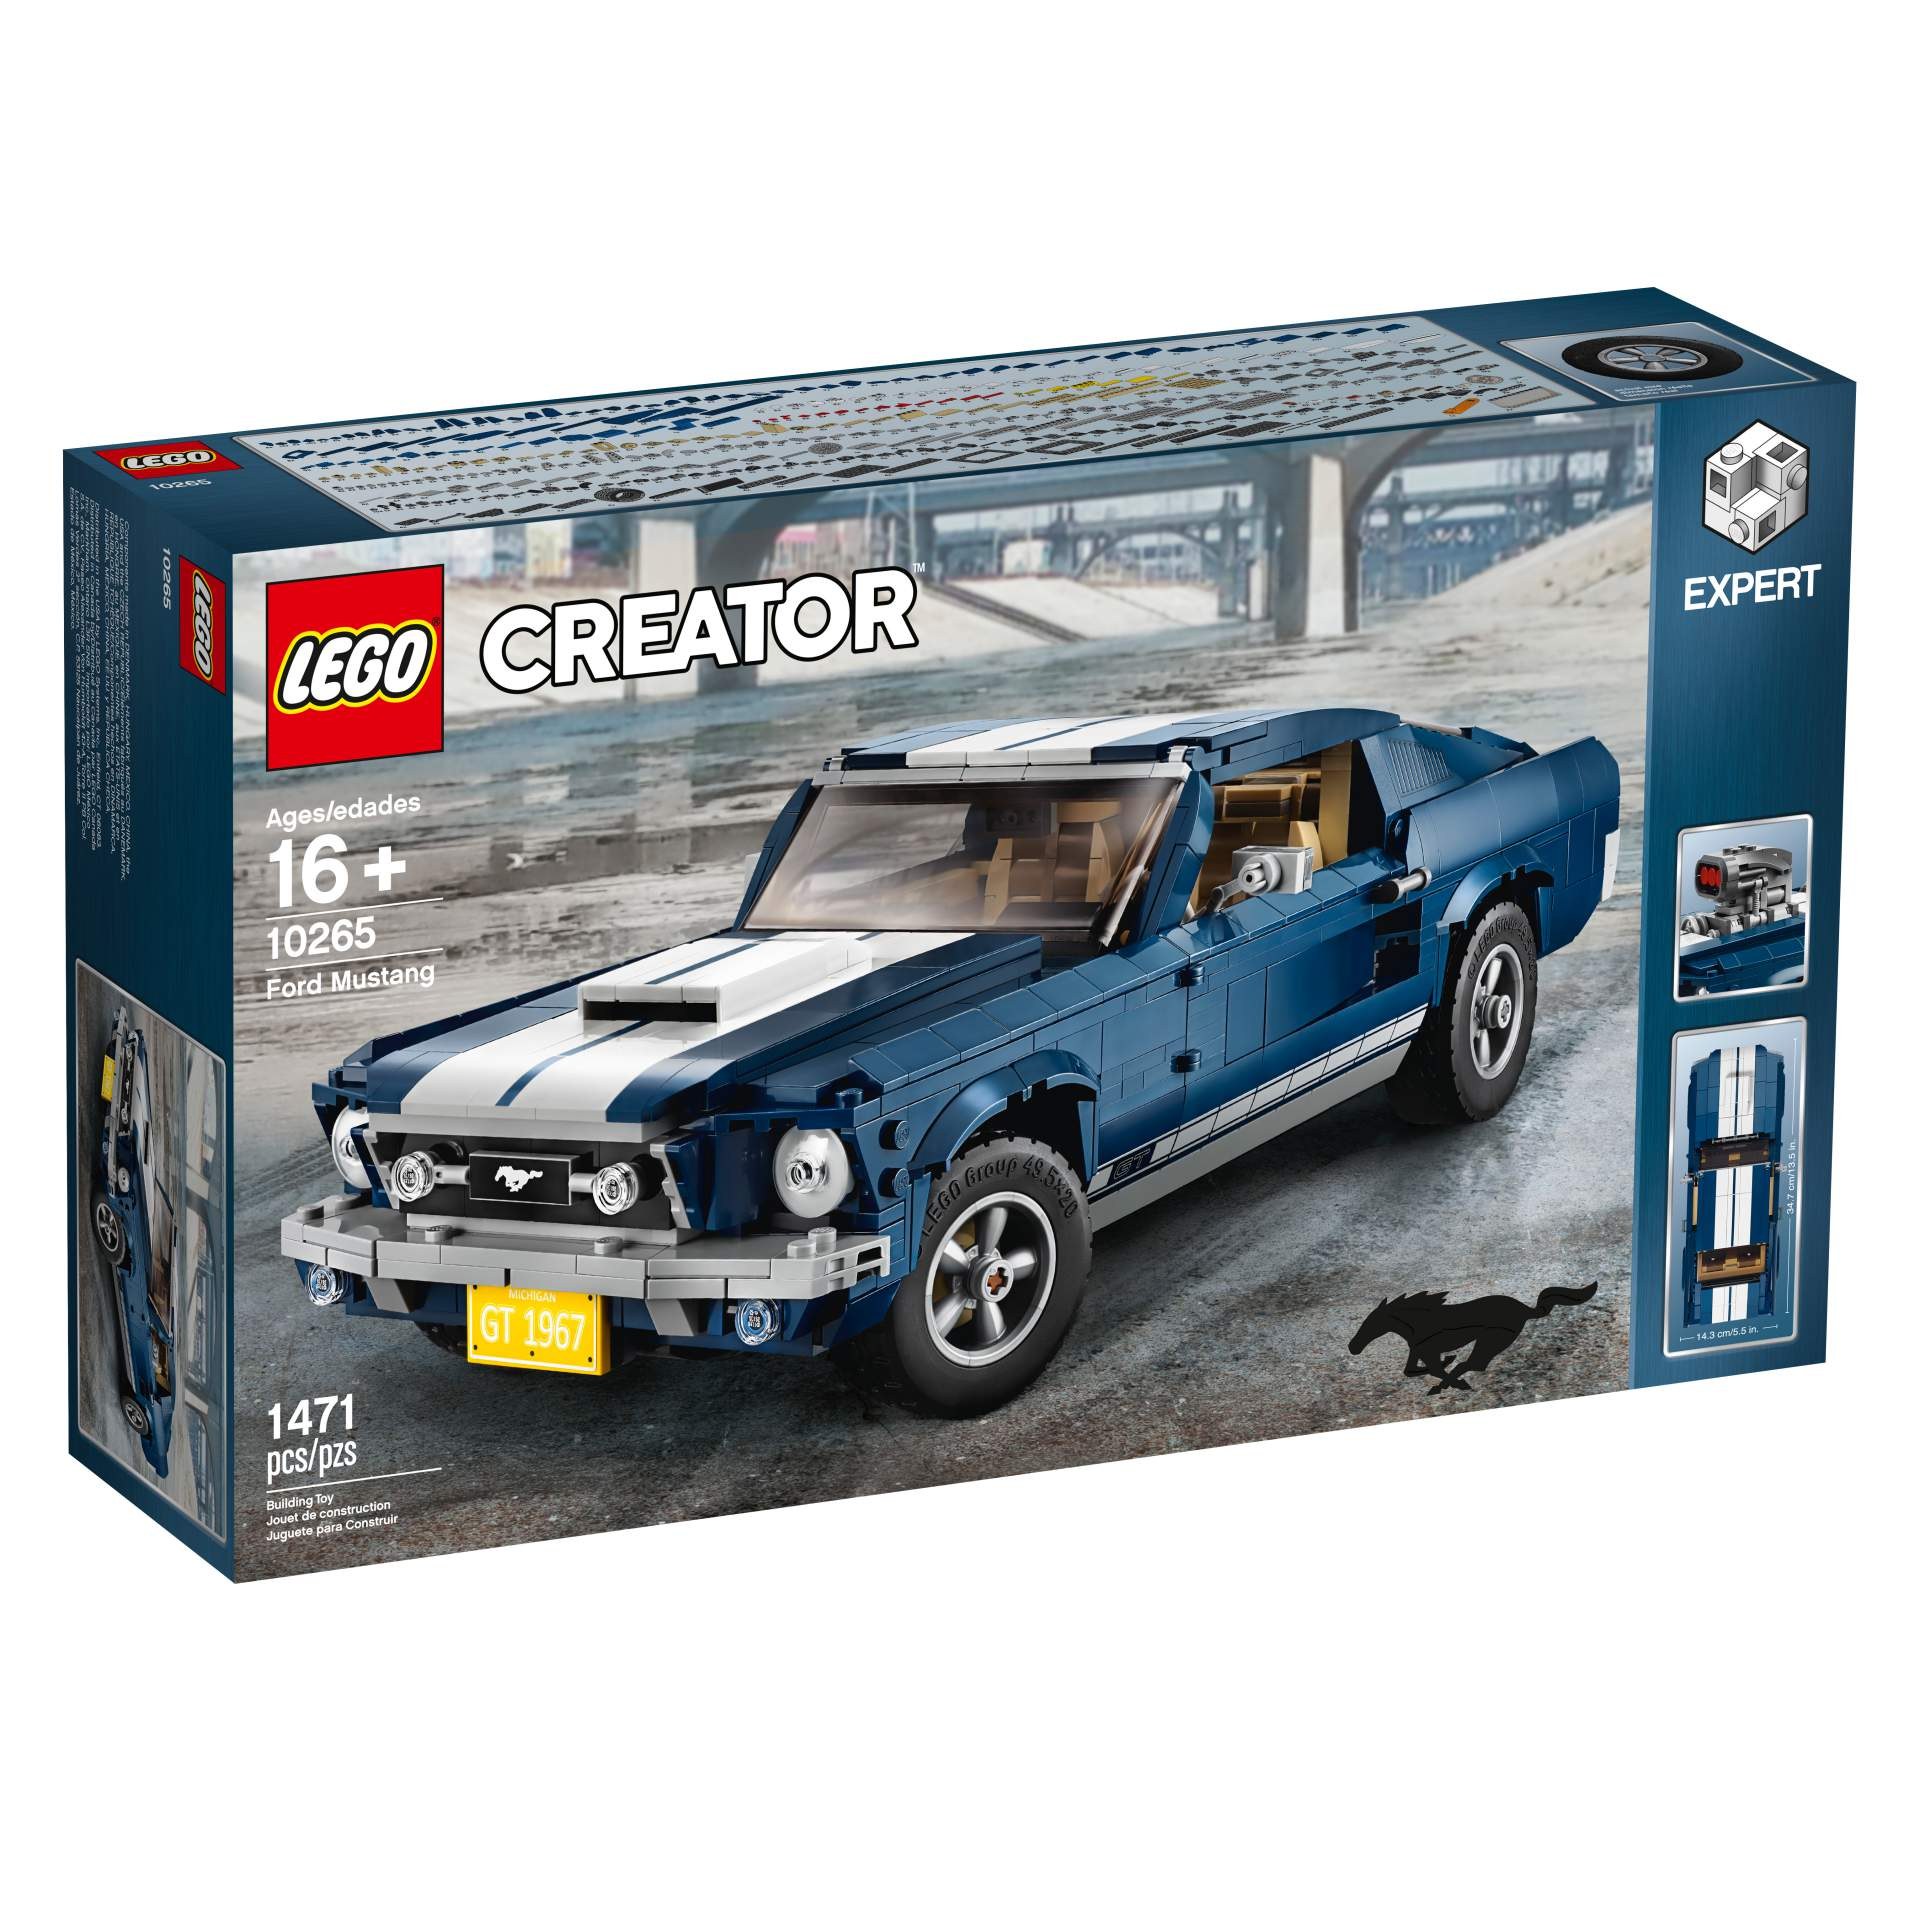 Ford Mustang GT 1967 Lego Creator Set (21)